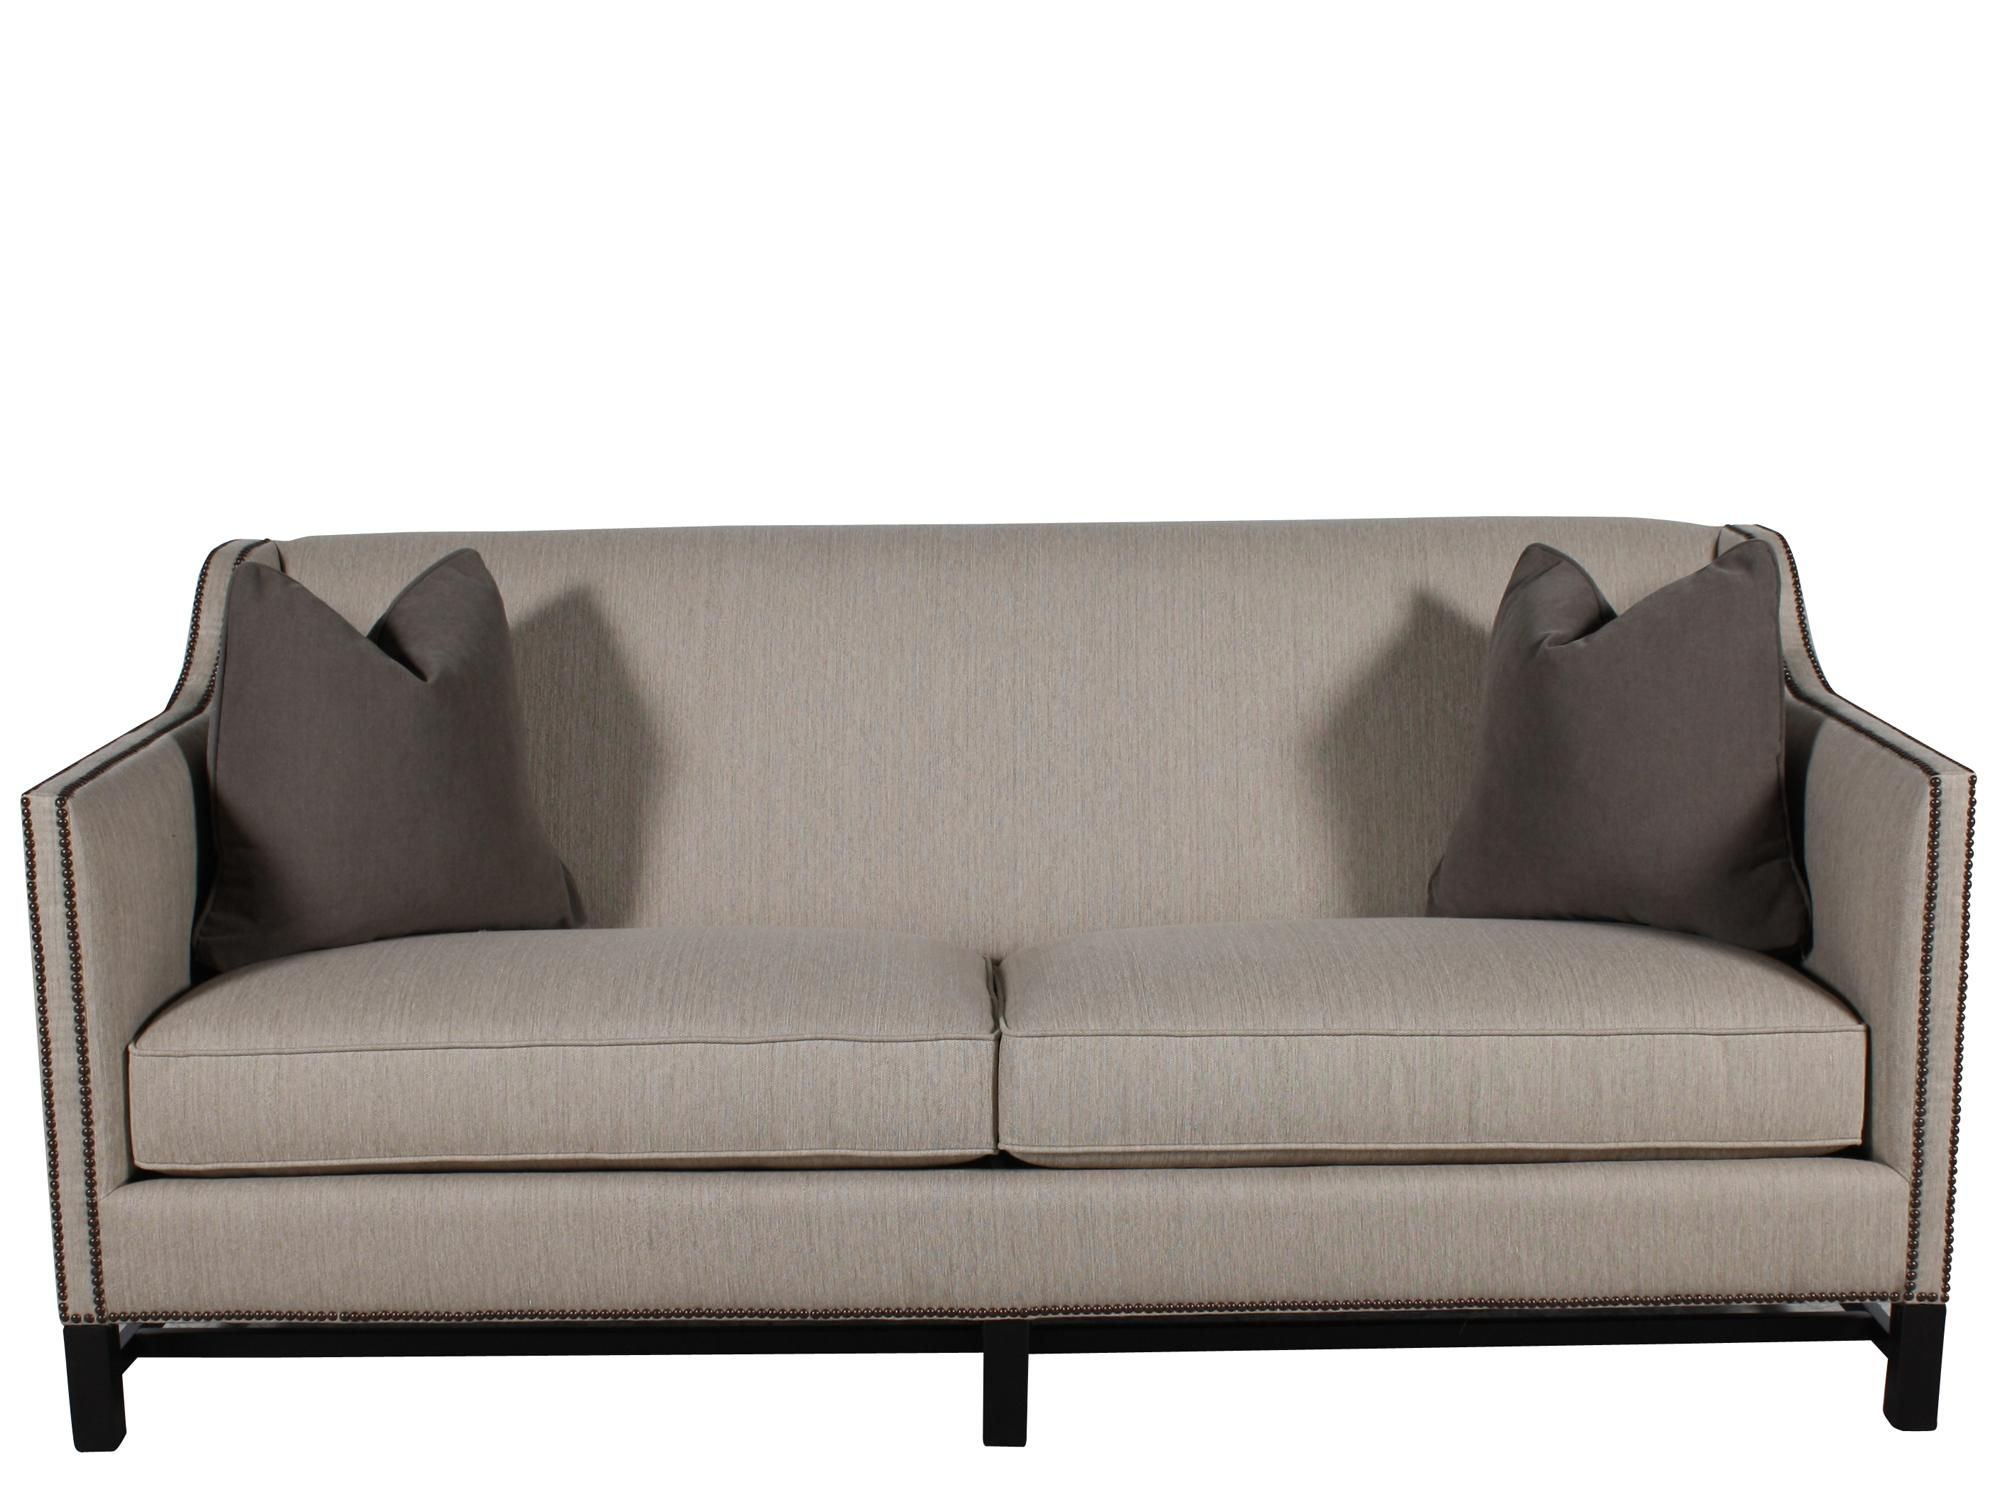 sofa at courts daybed bed bernhart bernhardt interiors chatham keel